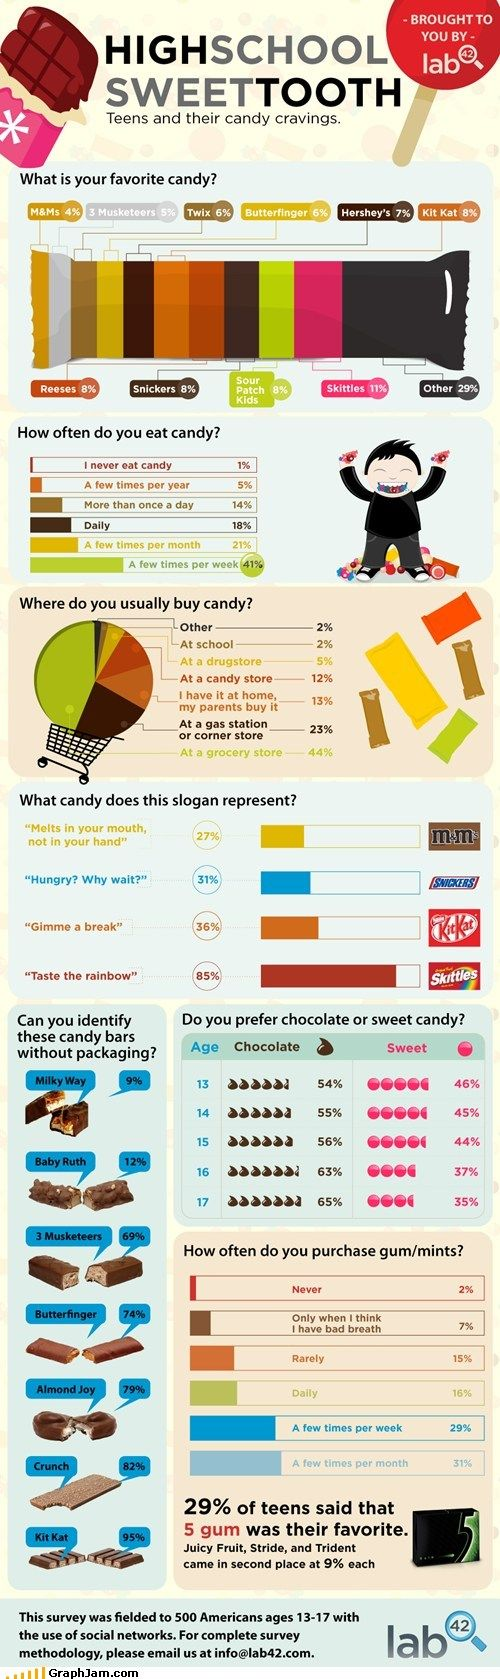 Sweet tooth infographic